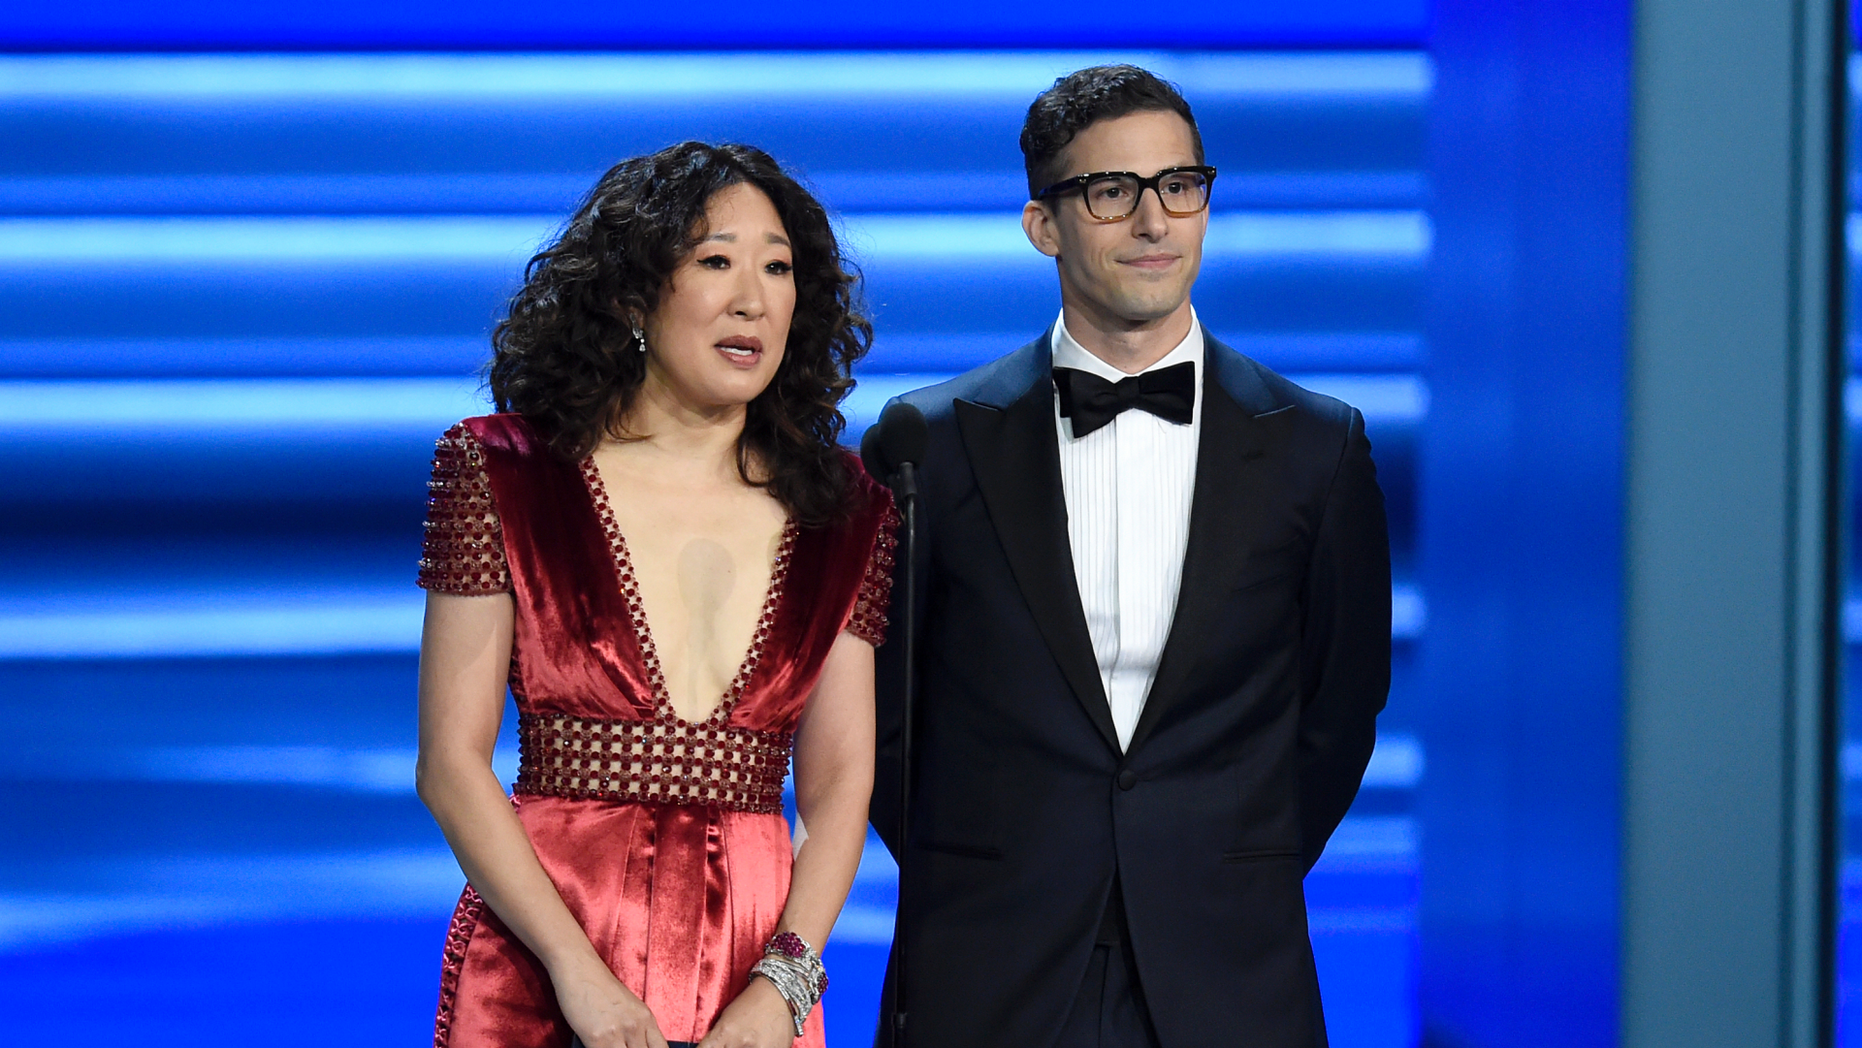 Sandra Oh, left, and Andy Samberg present an award at the 70th Primetime Emmy Awards in Los Angeles. Oh and Samberg will share host duties at next month's Golden Globe ceremony.